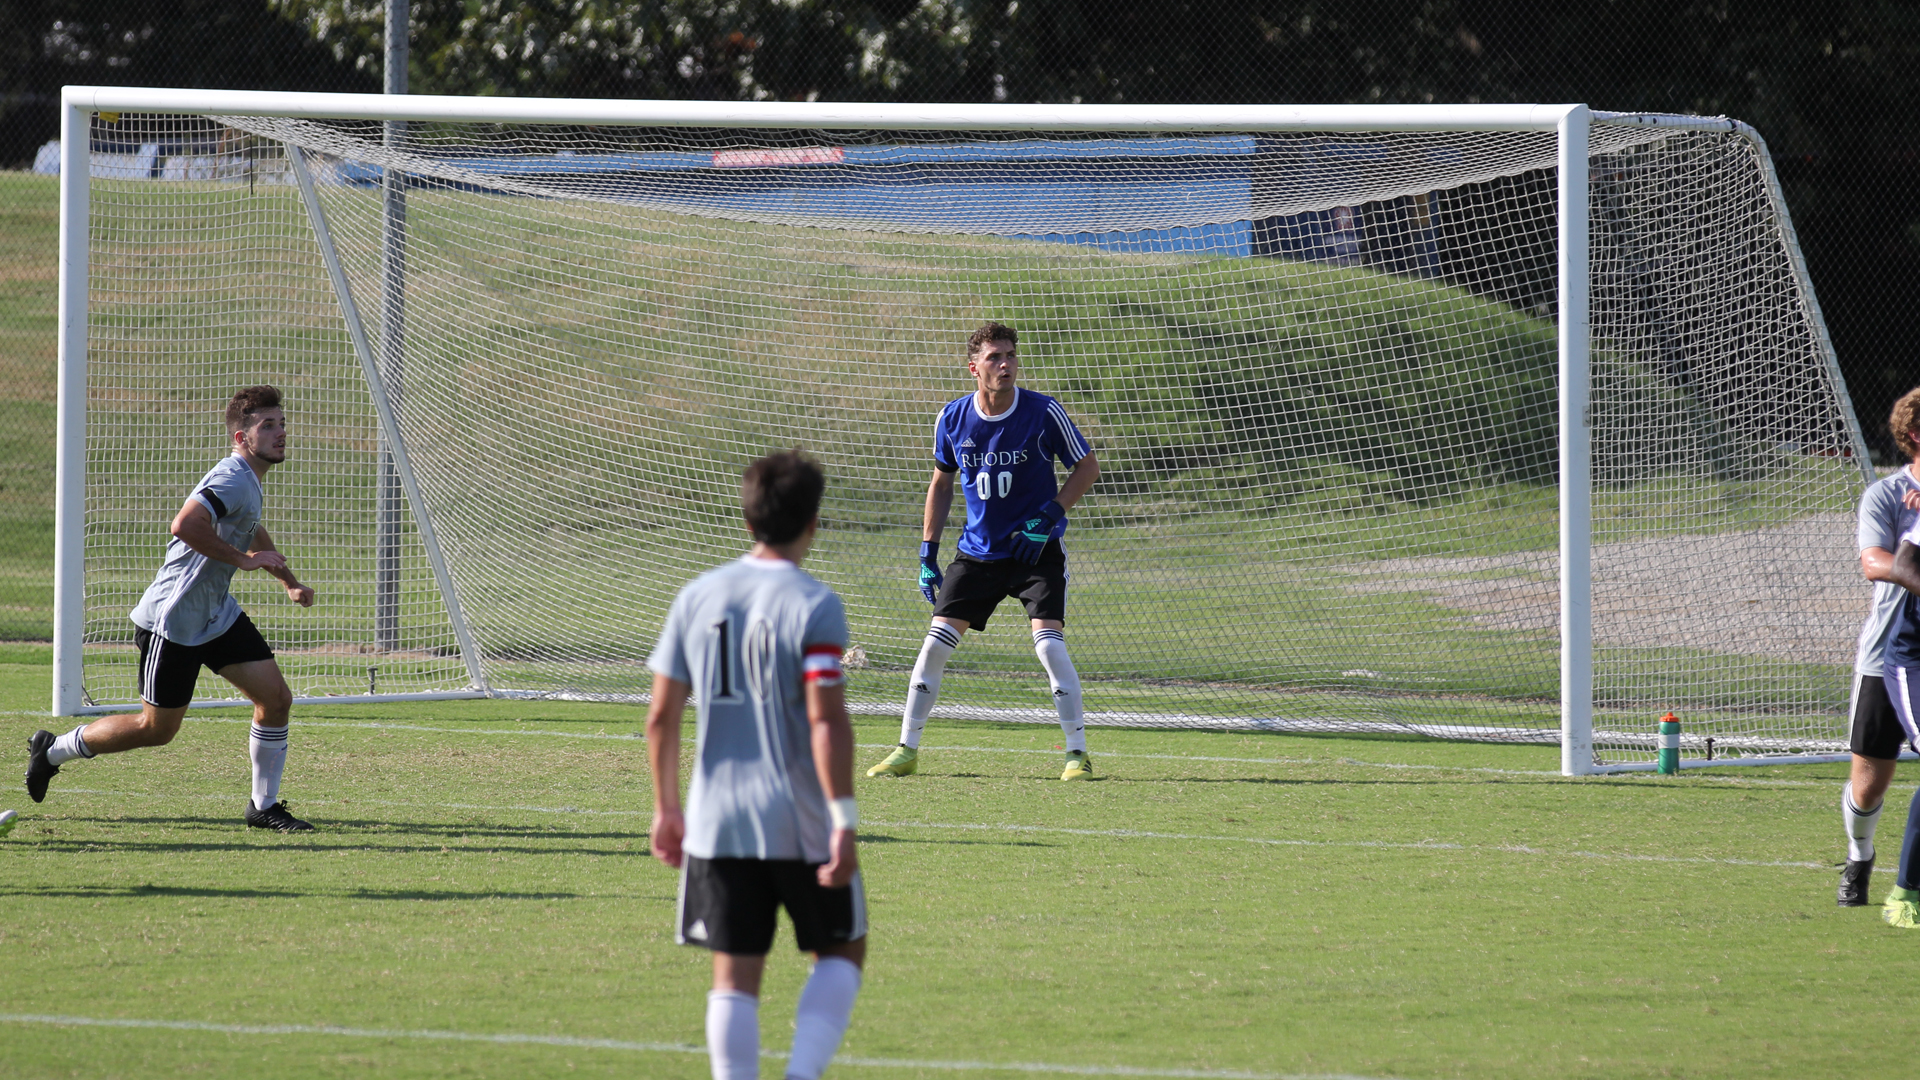 Lynx suffer first shutout against No. 9-regionally ranked ...